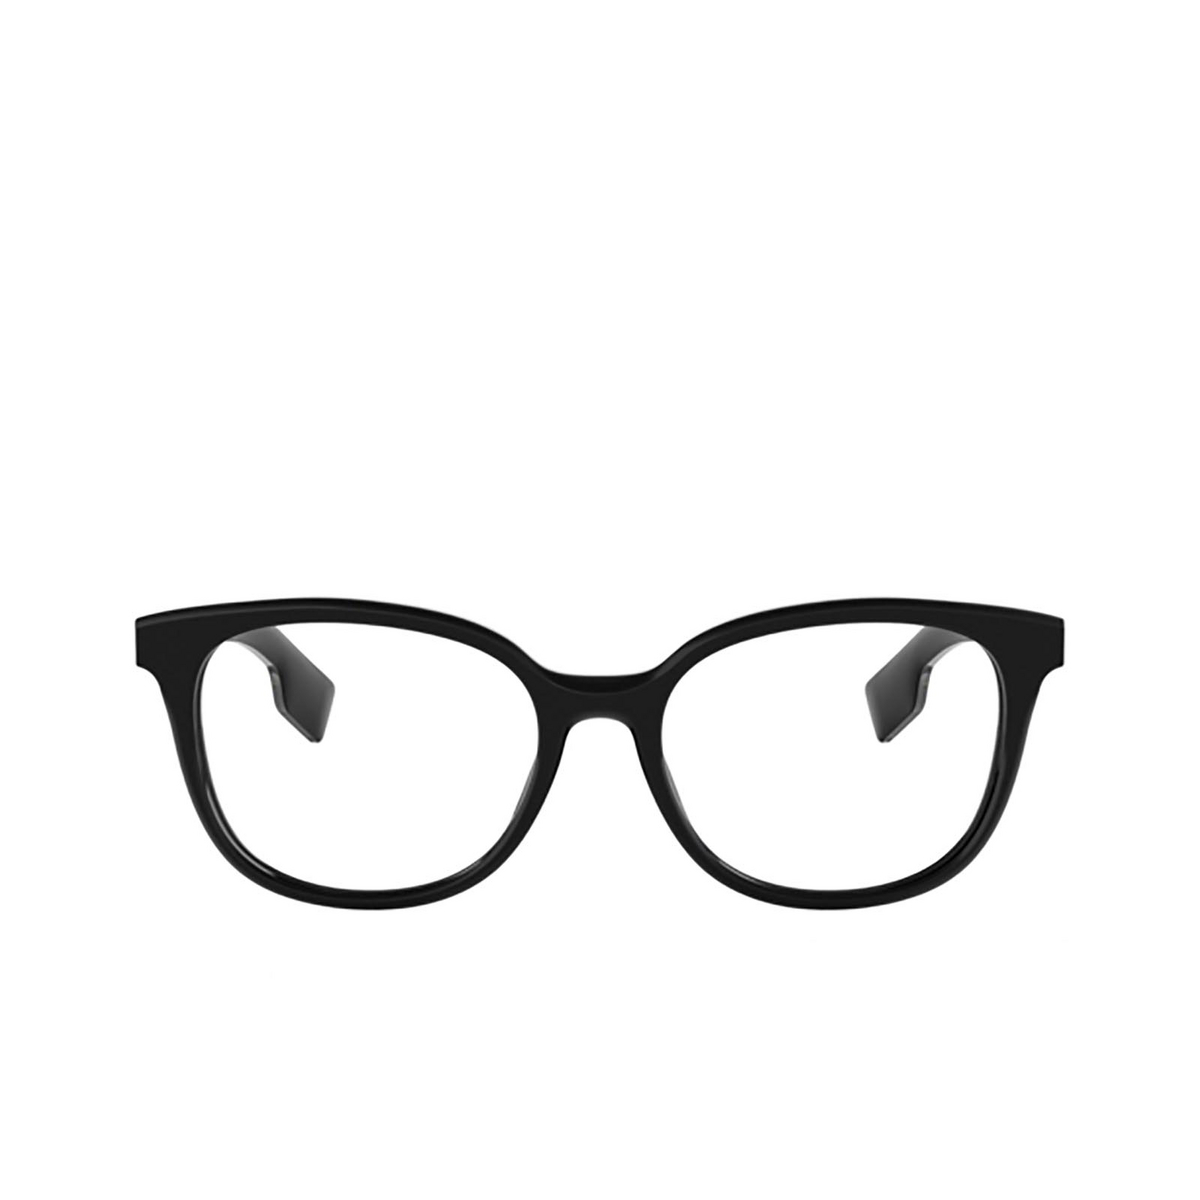 Burberry® Square Eyeglasses: BE2291 color Black 3758 - front view.